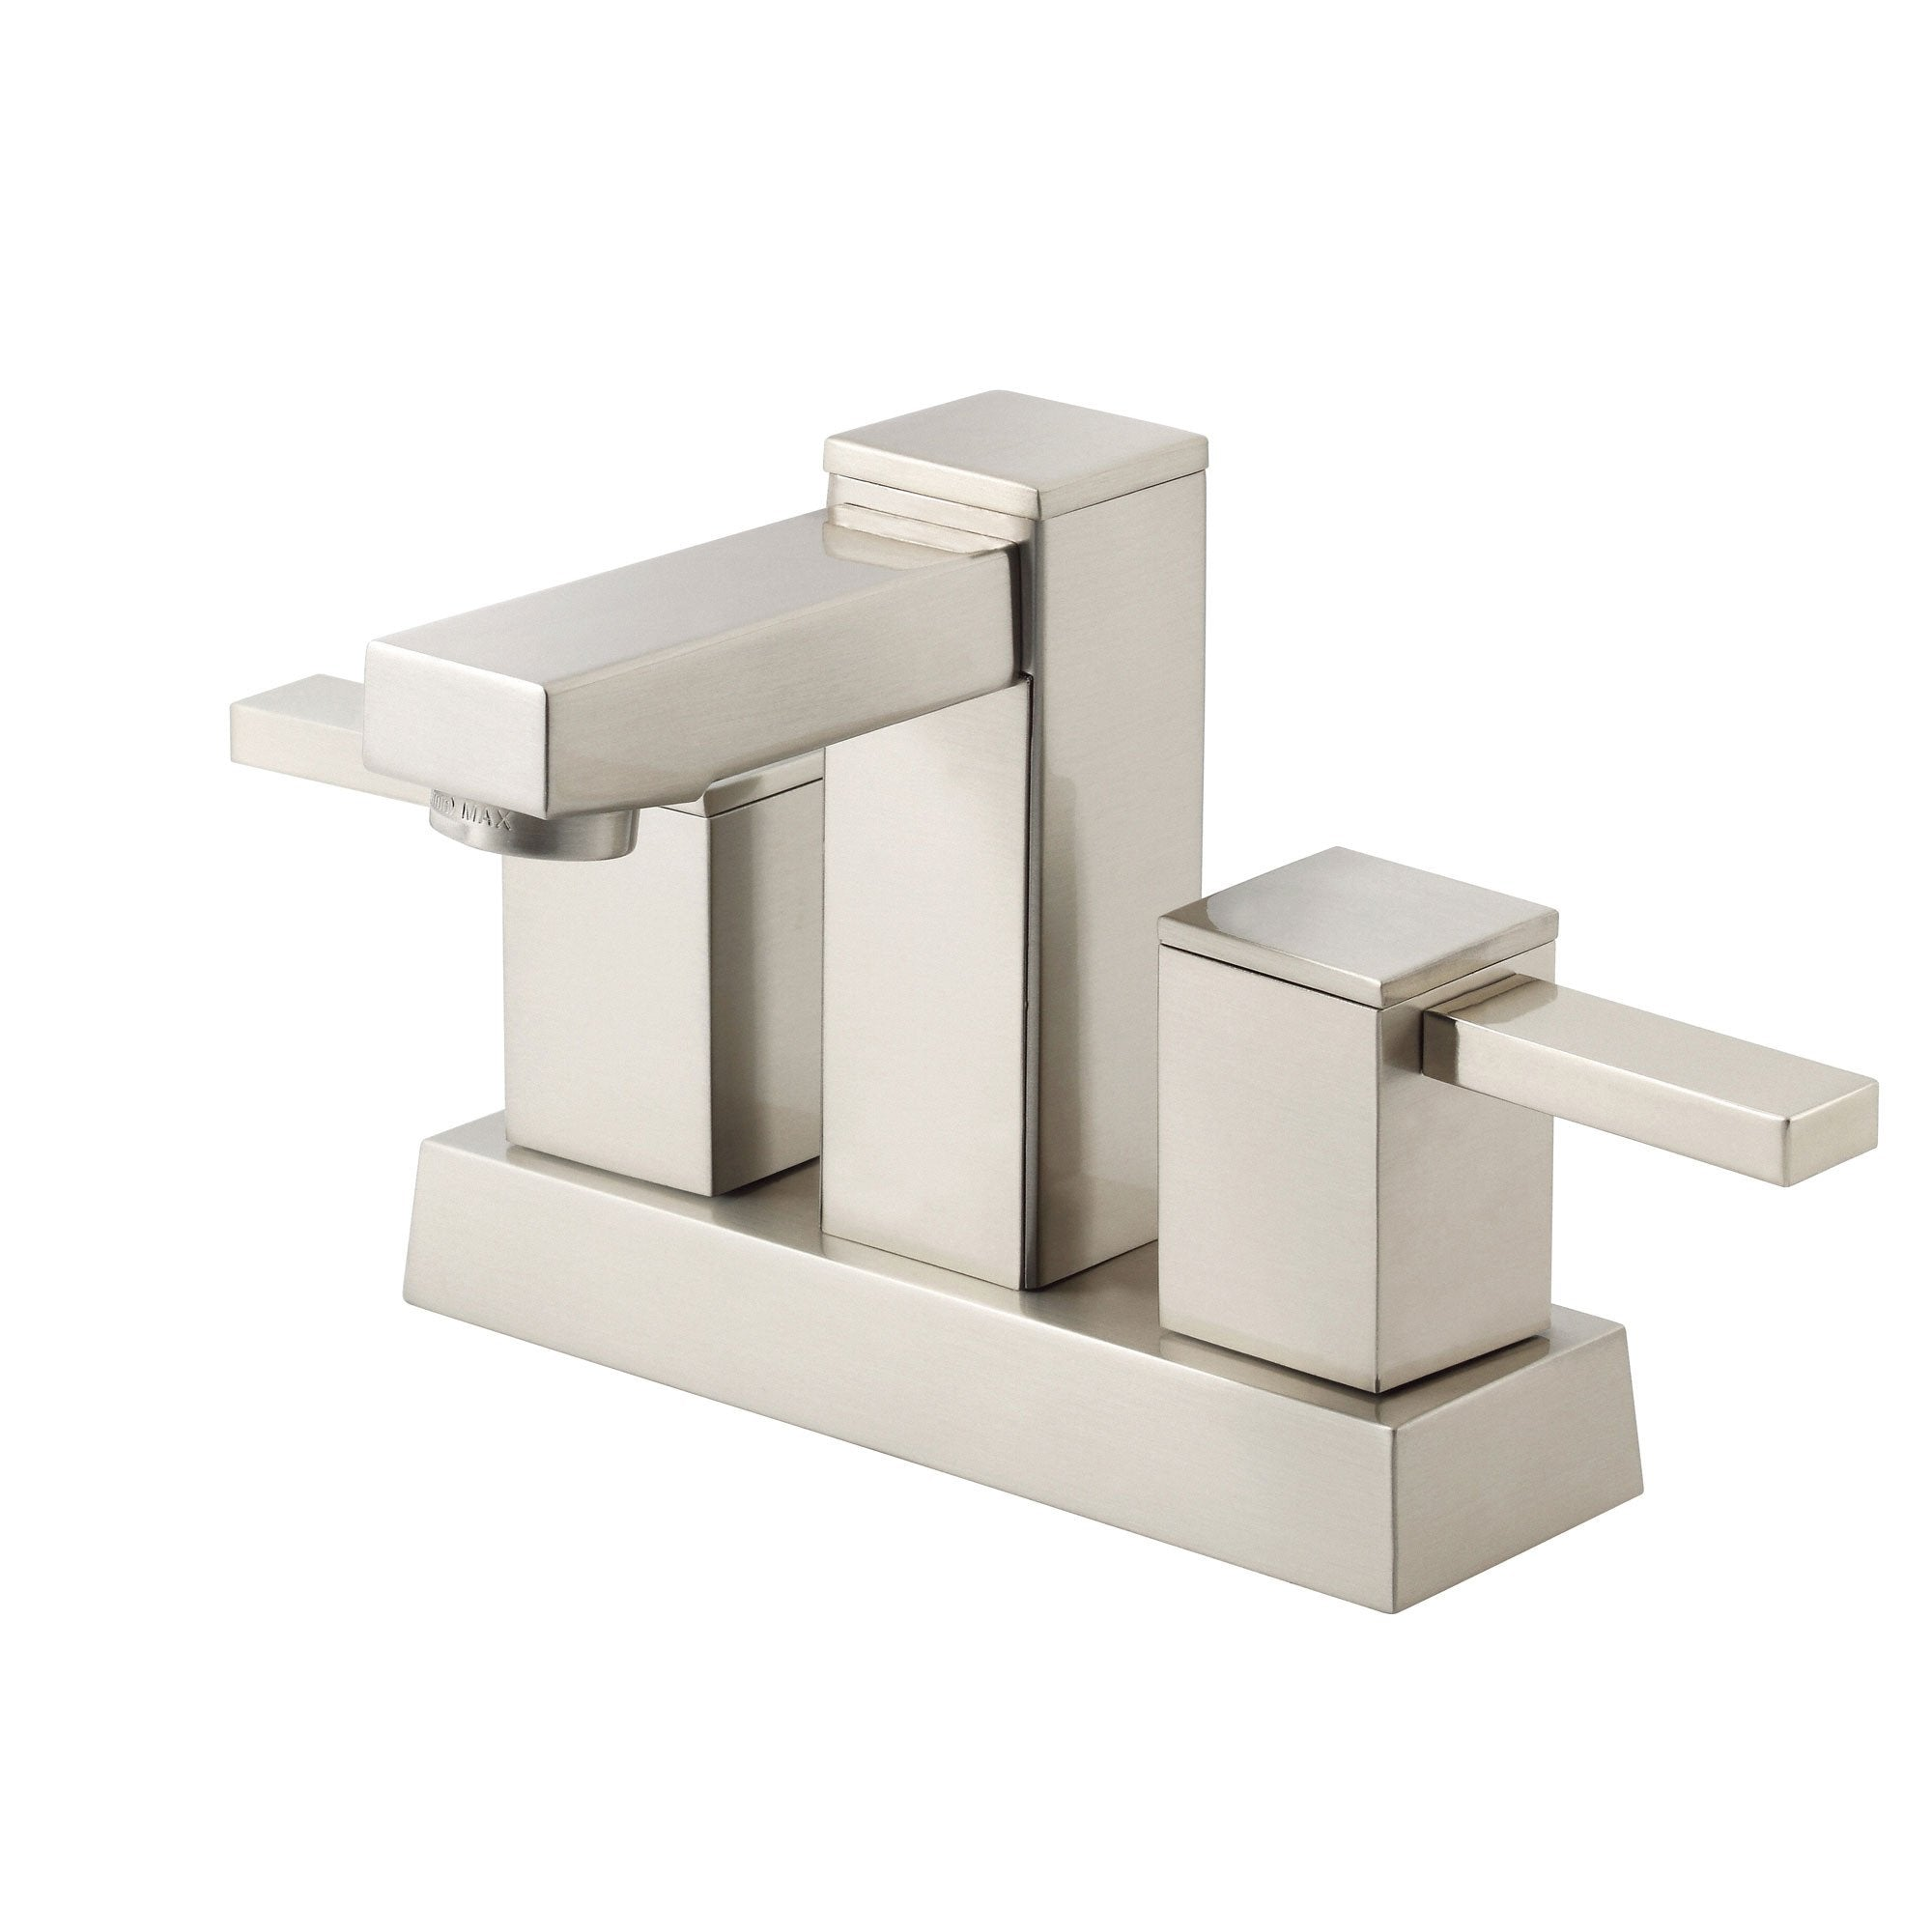 "Danze Reef Brushed Nickel Square Modern 4"" Centerset Bathroom Faucet w/ Drain"